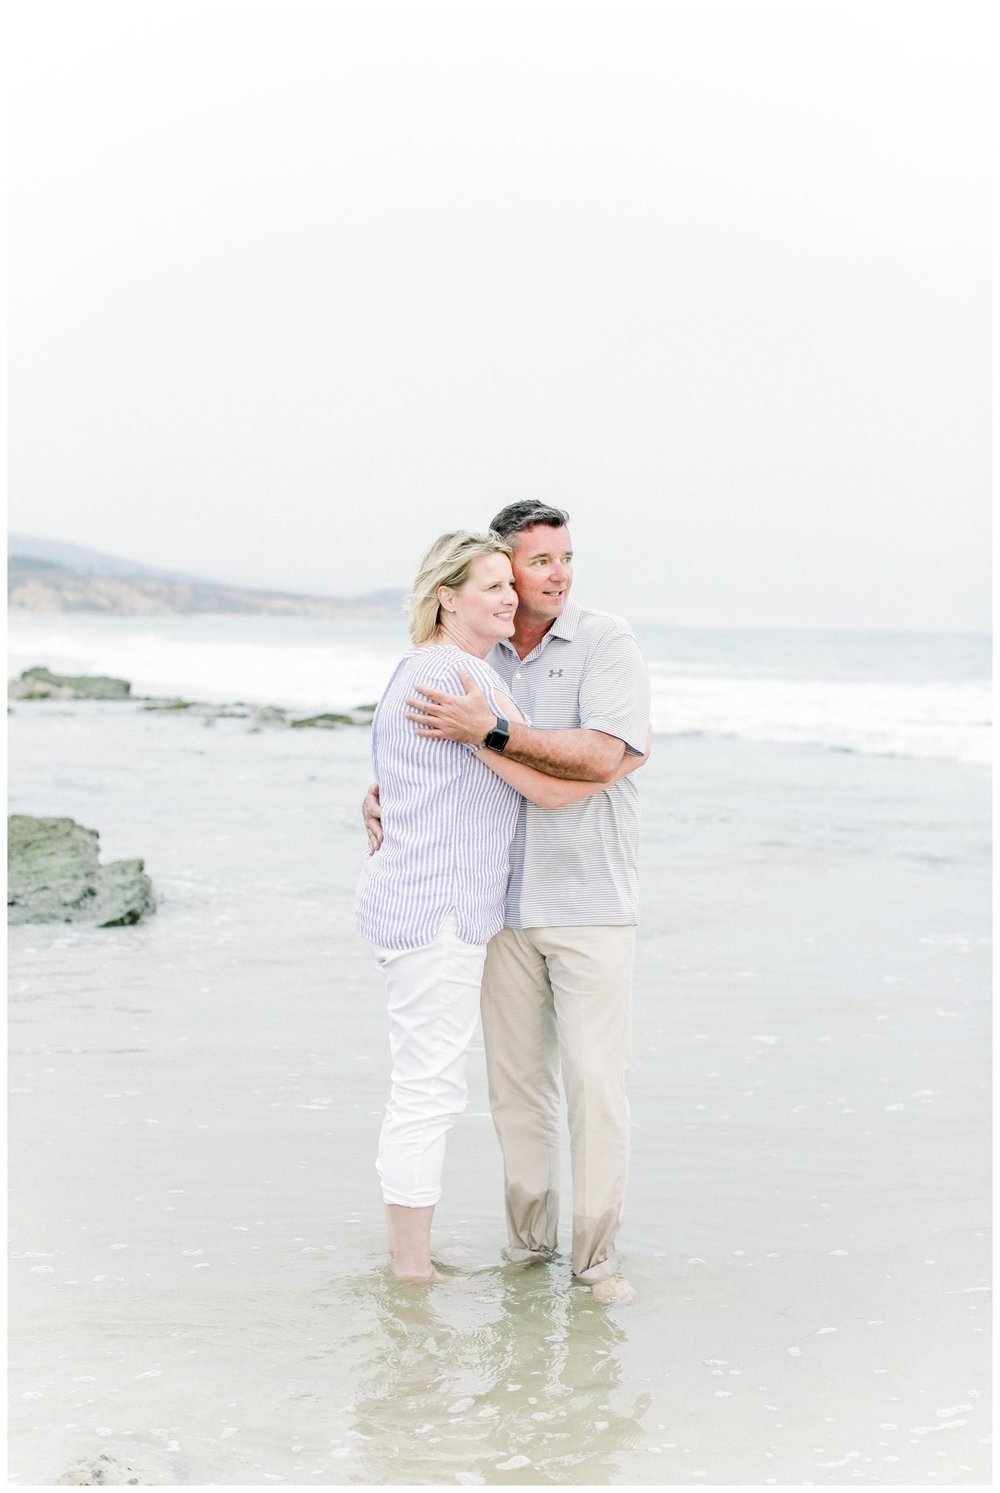 Newport_Beach_Family_Photographer_Orange_County_Family_Photography_Cori_Kleckner_Photography_Orange_County_Family_Photographer_Beach_Family_Session__1220.jpg